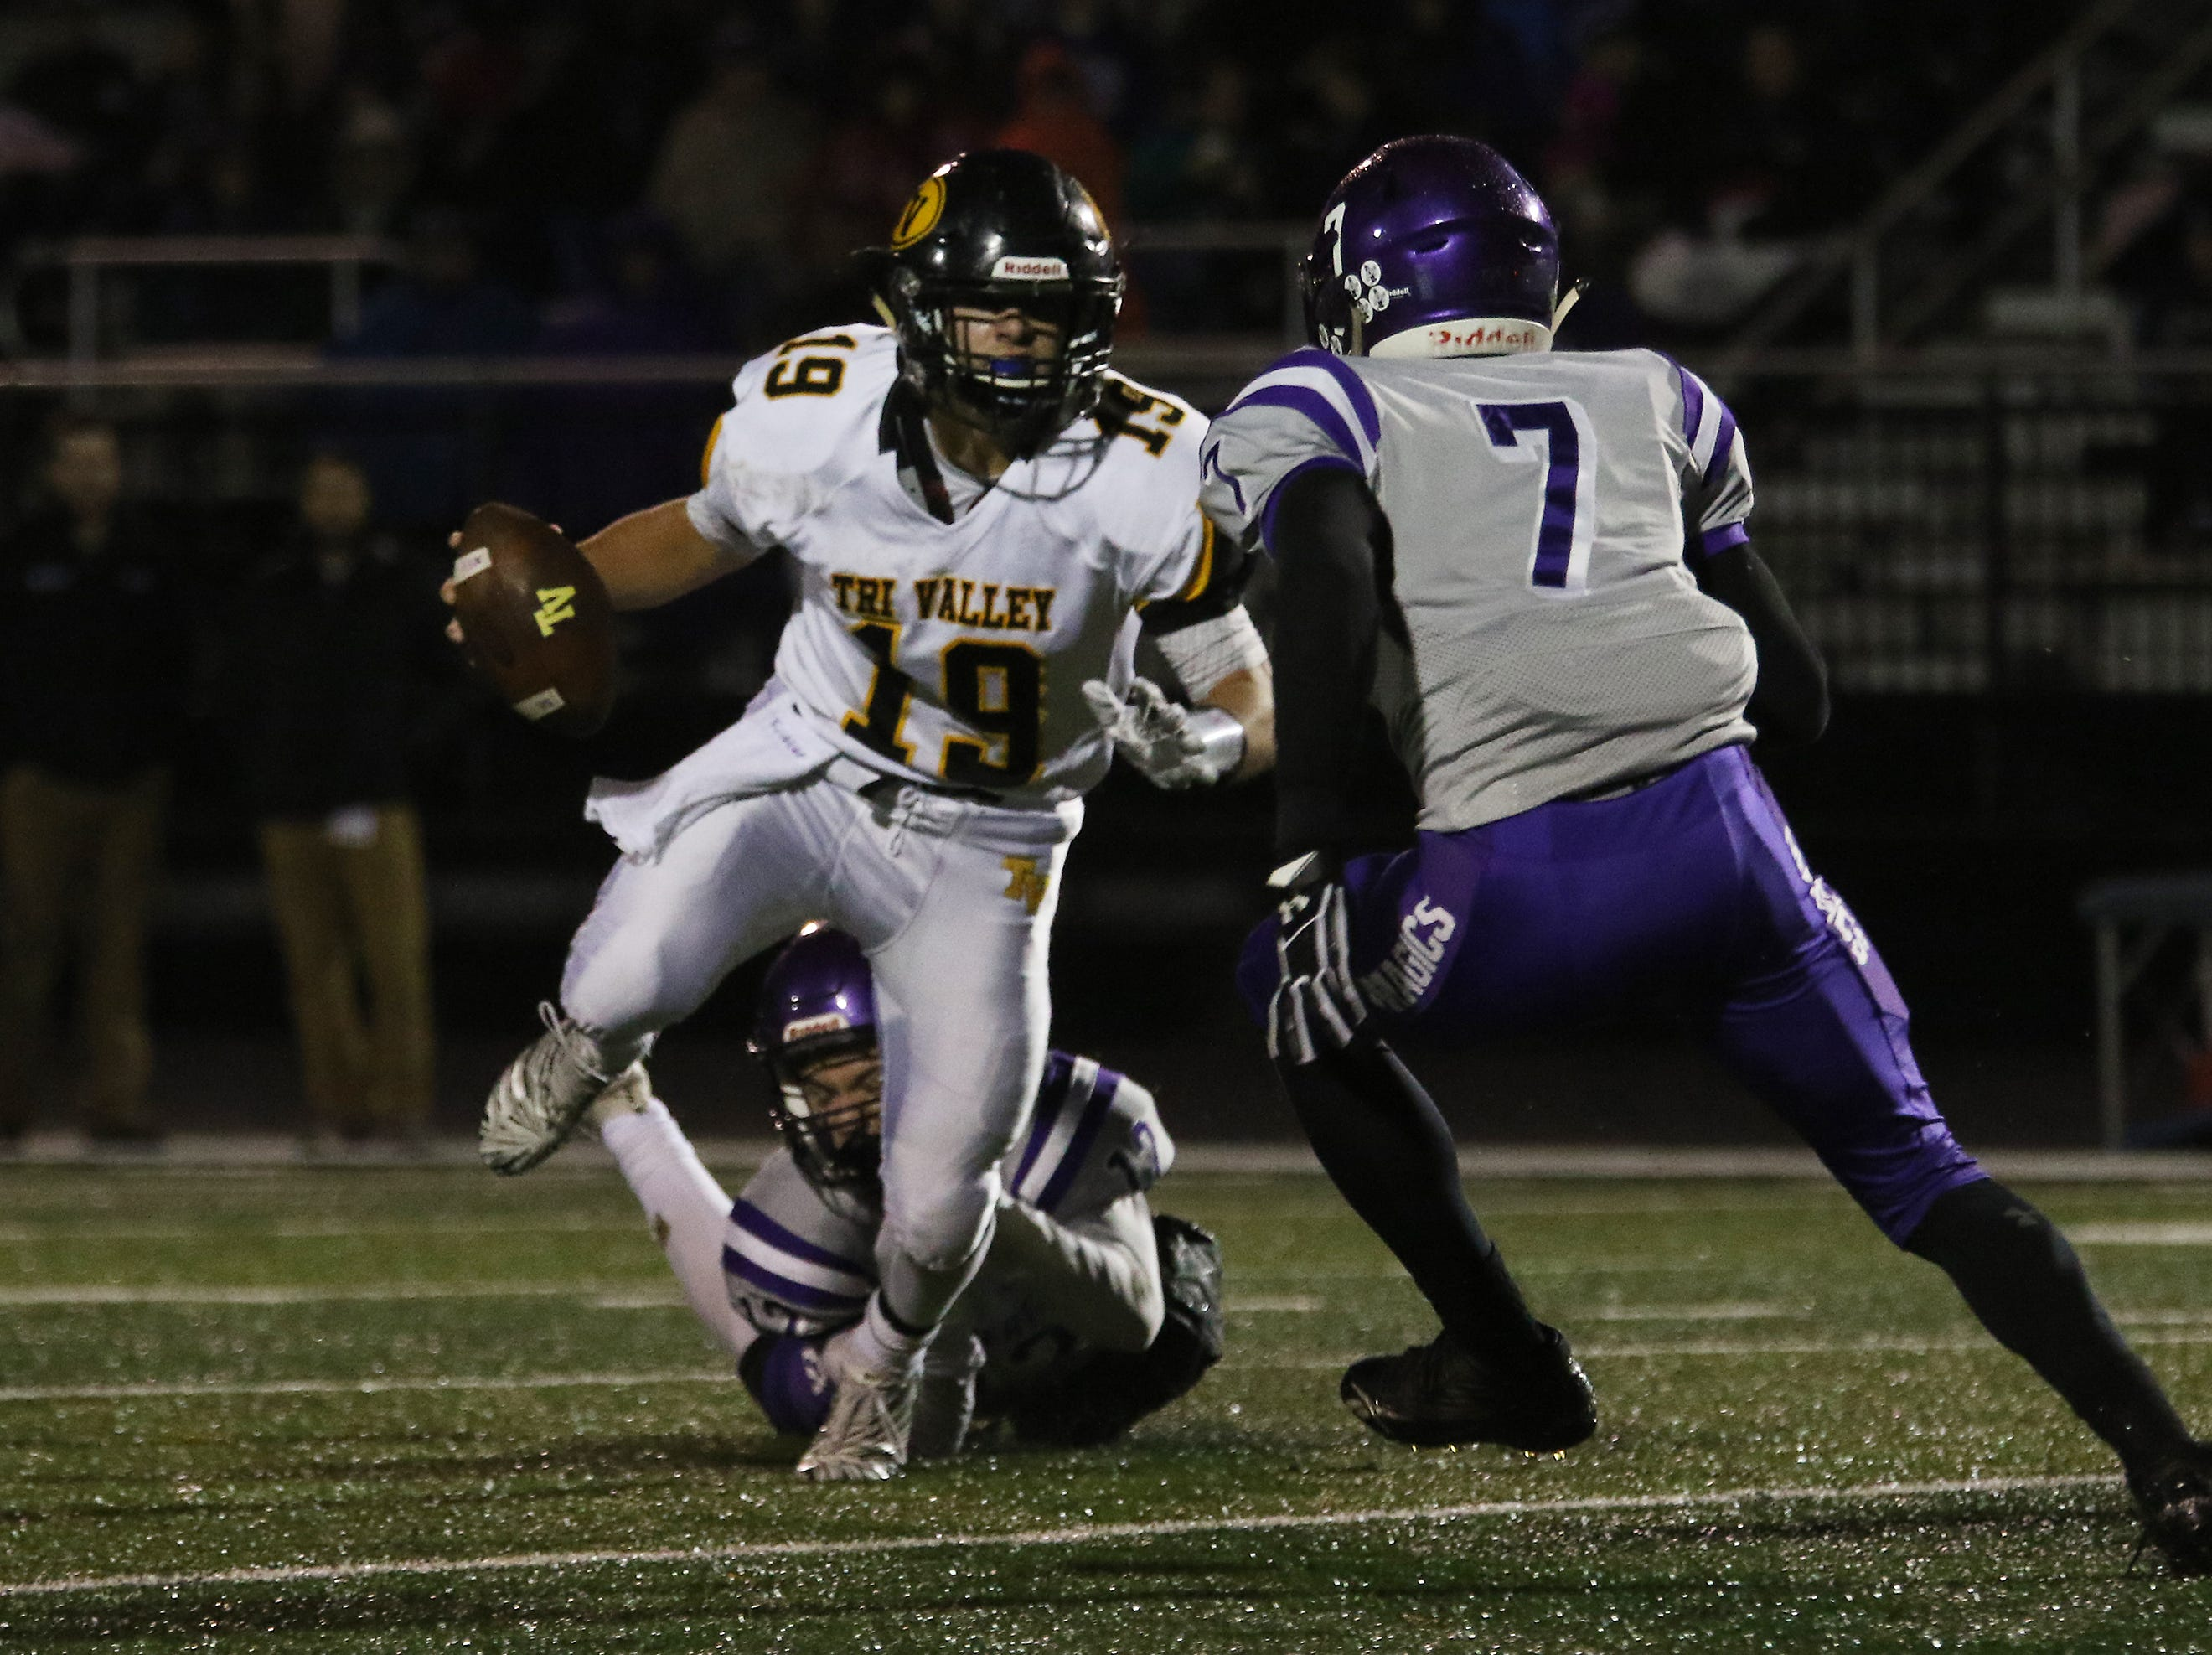 Tri-Valley's Aiden Fritter eludes a Barberton defener.